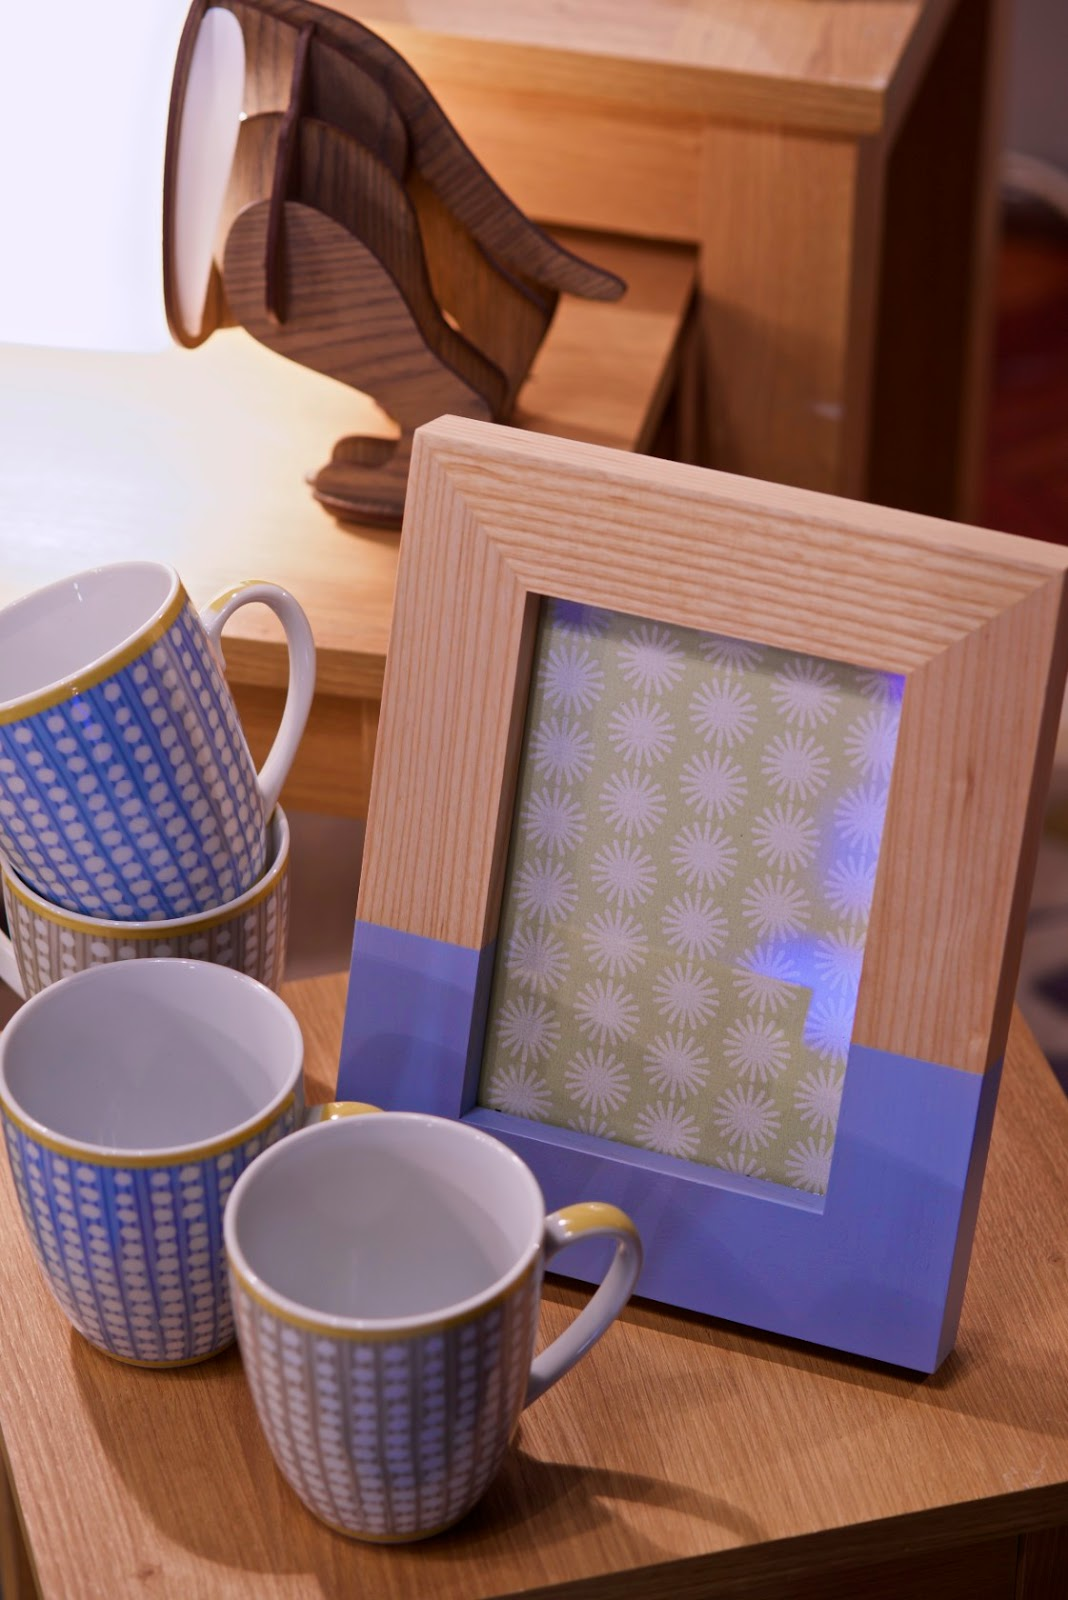 blue accents on mugs and photoframes